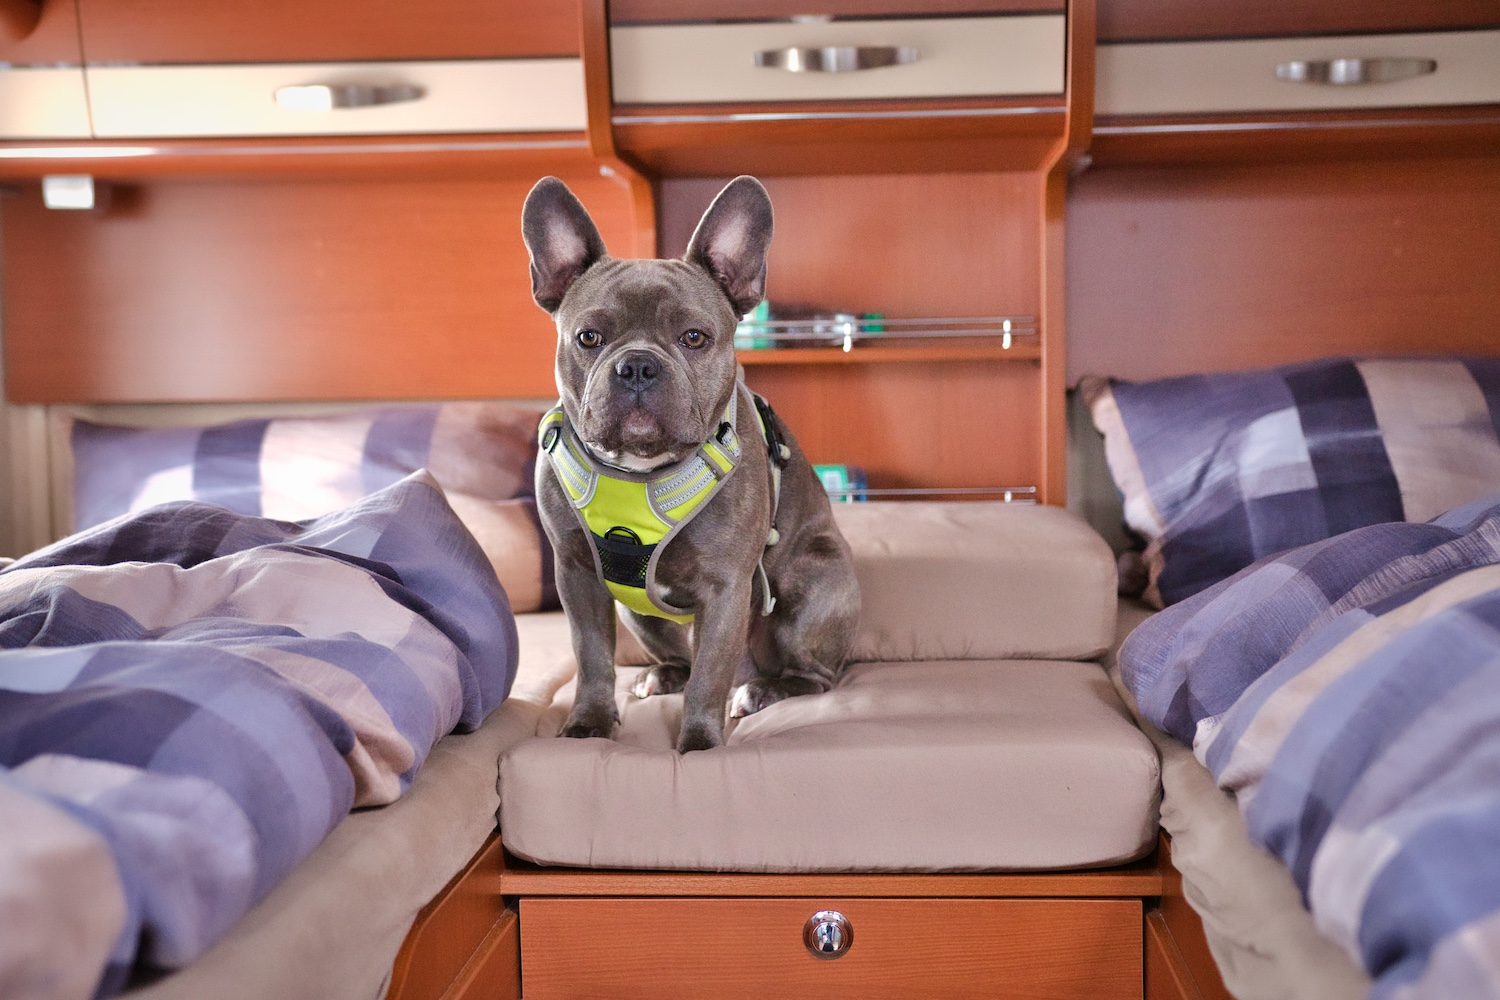 Finally a picture of our Trüffle in the camper bedroom